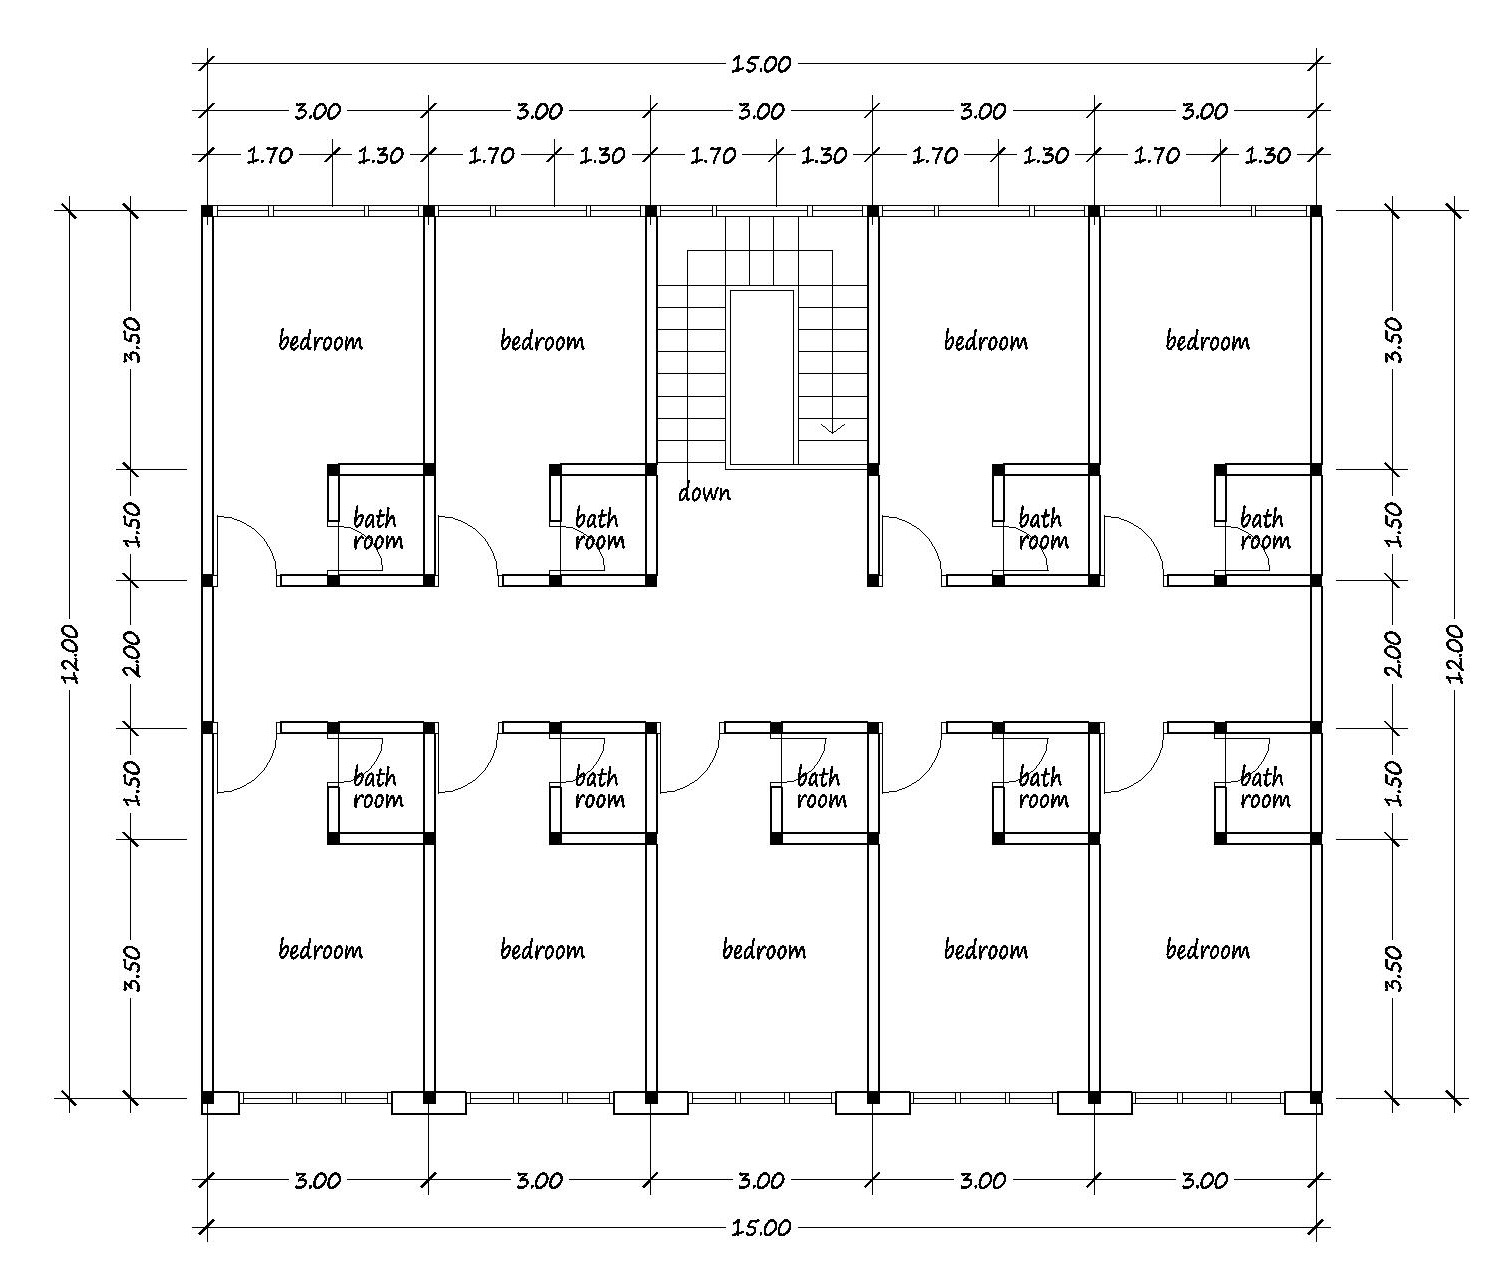 House plans for you plans image design and about house Kennel floor plans